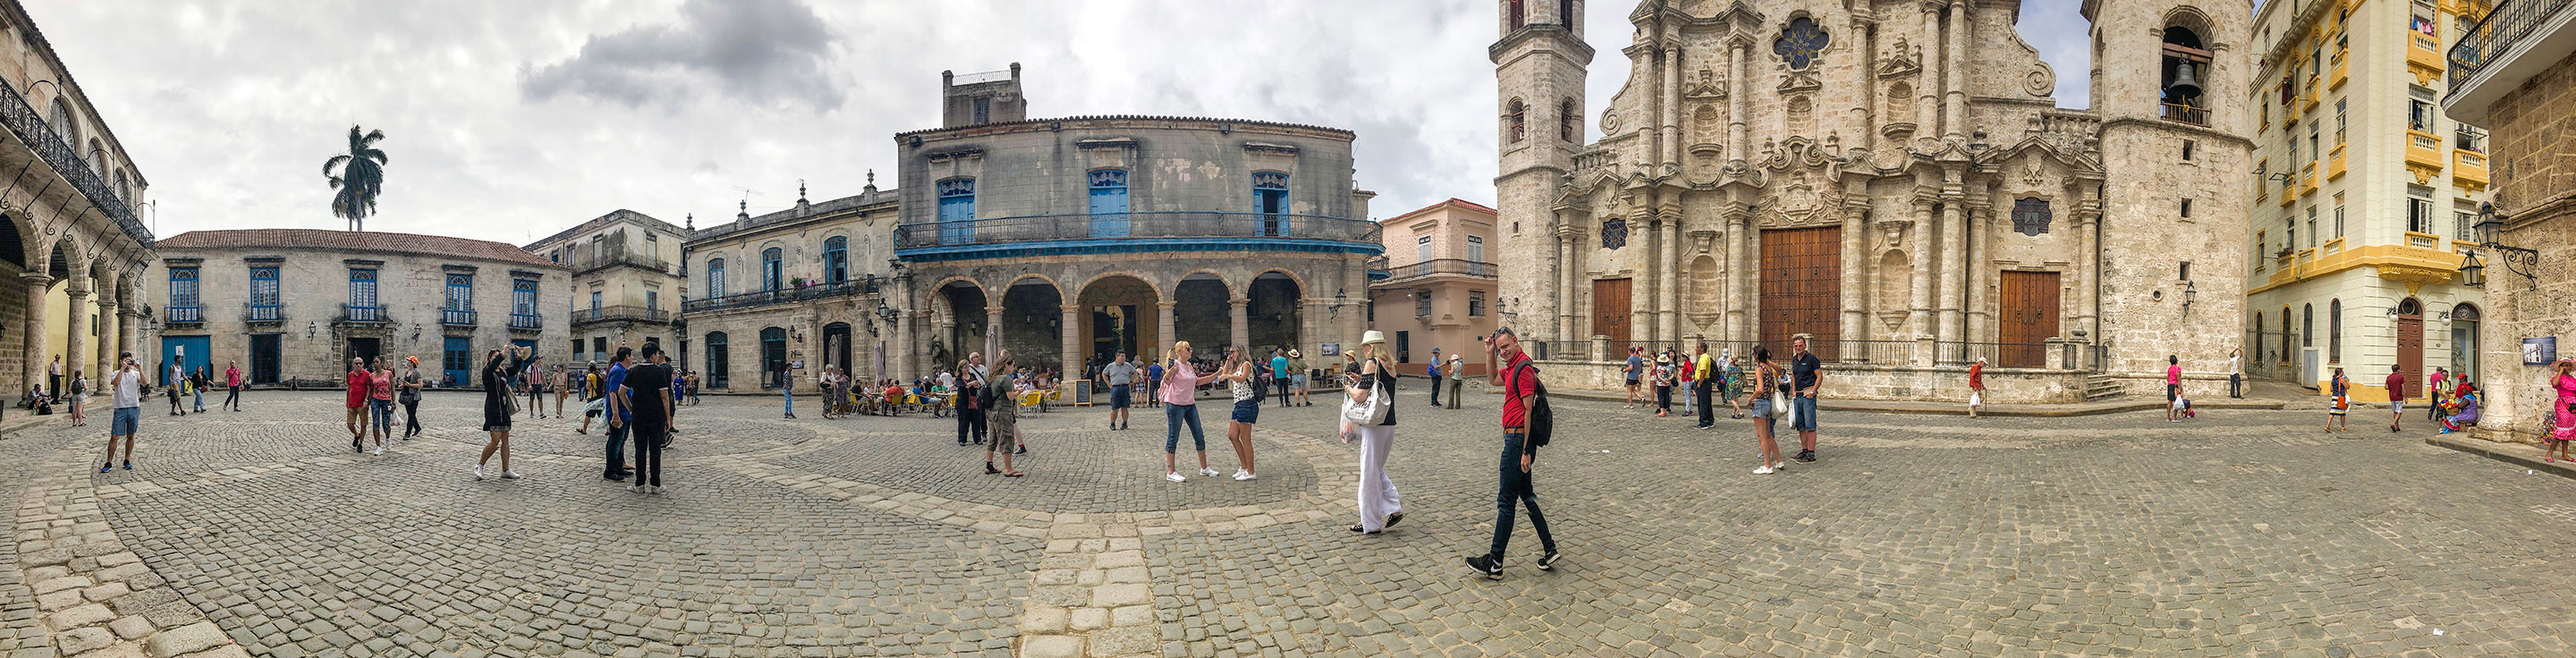 Panoramic of Plaza de la Catedral in Havana